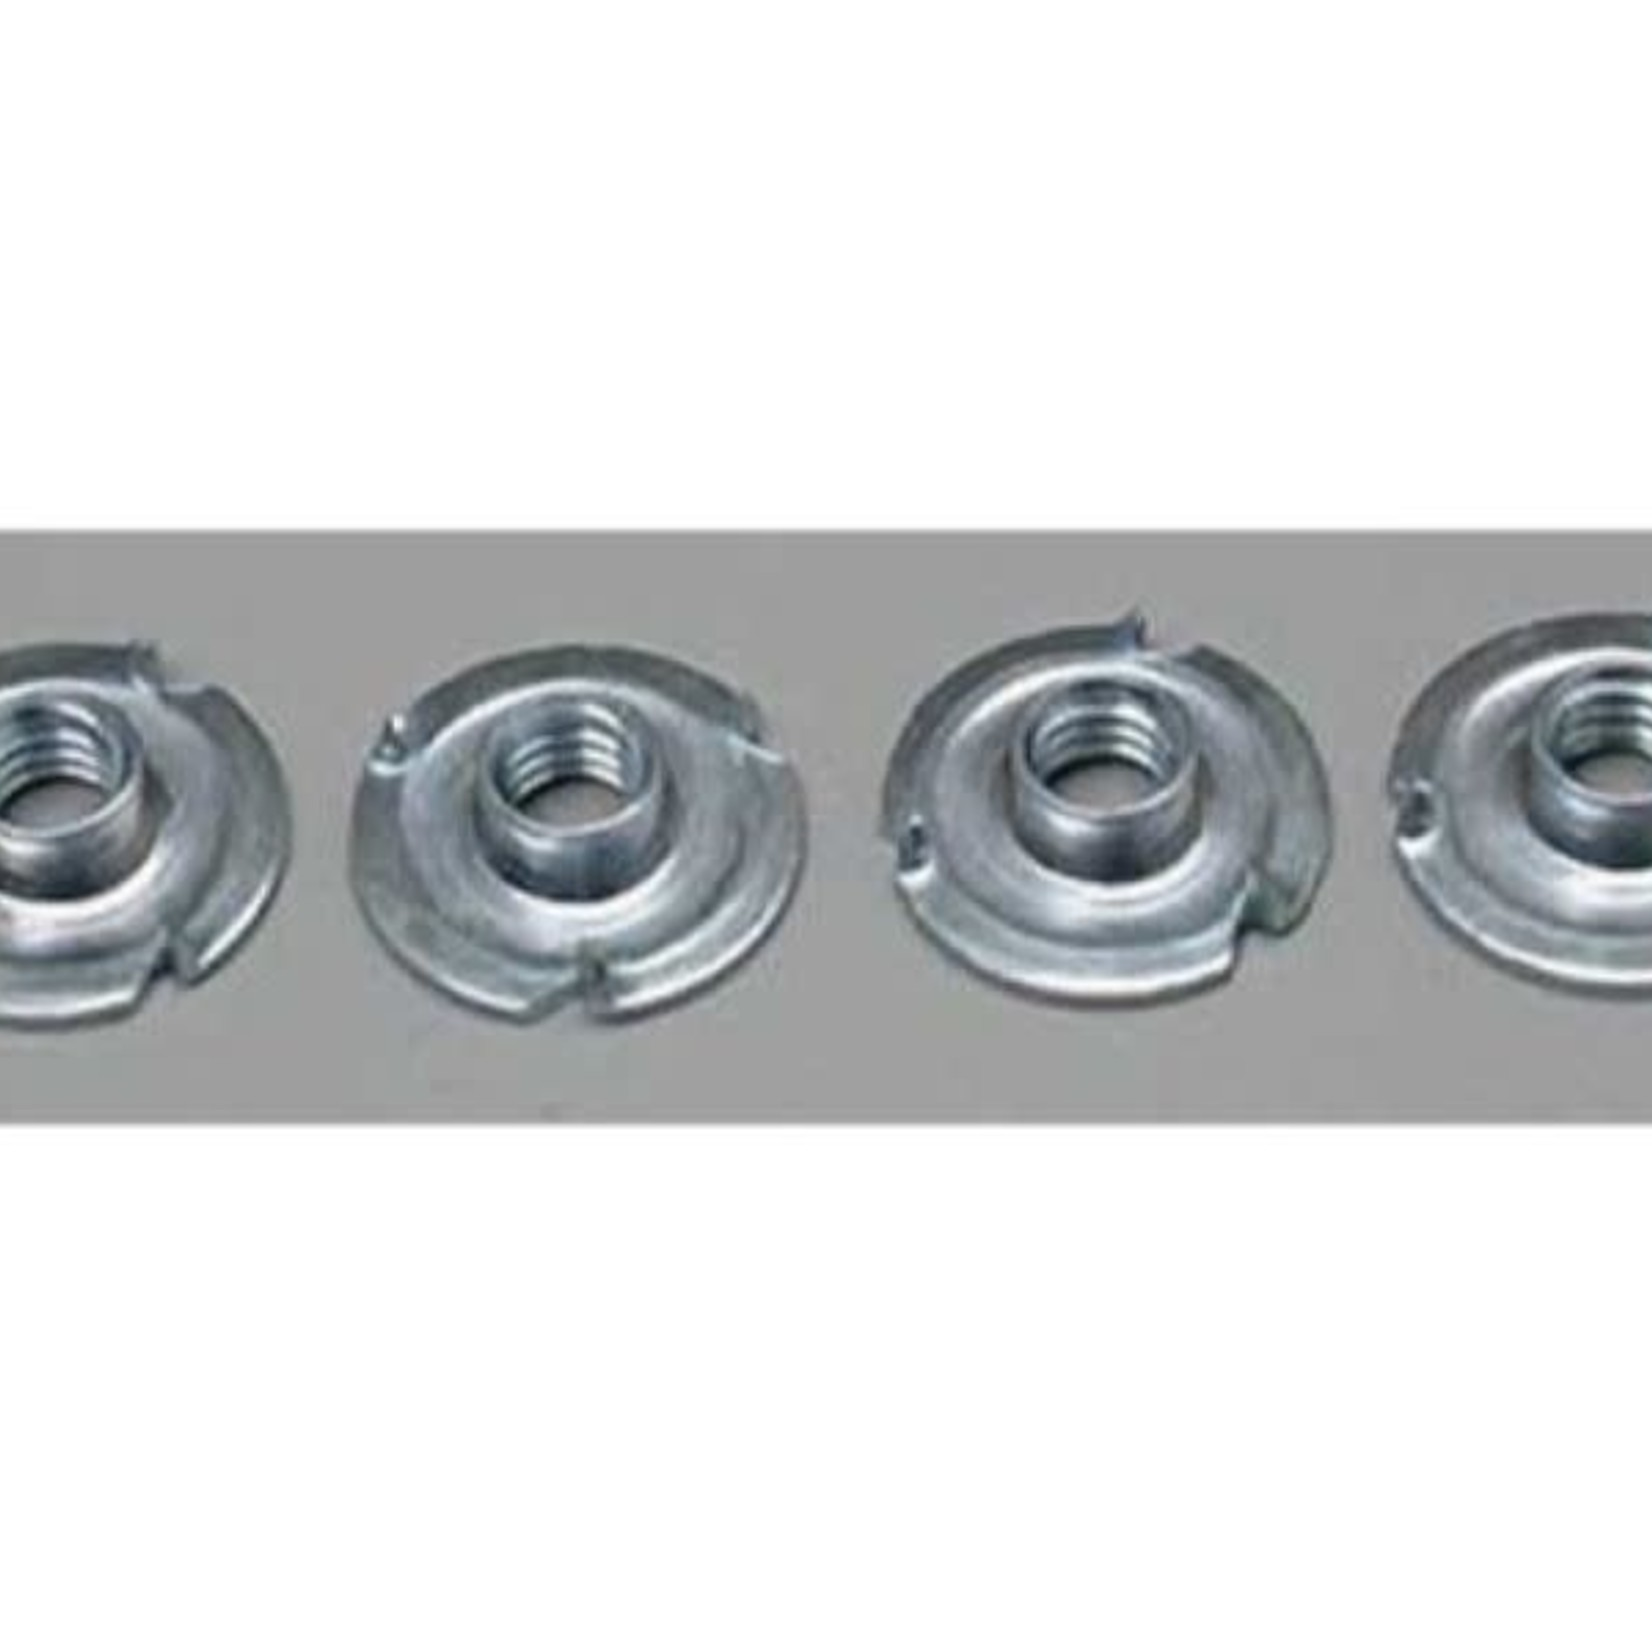 Dubro DUB653 Dubro 1/4 20 Blind Nuts